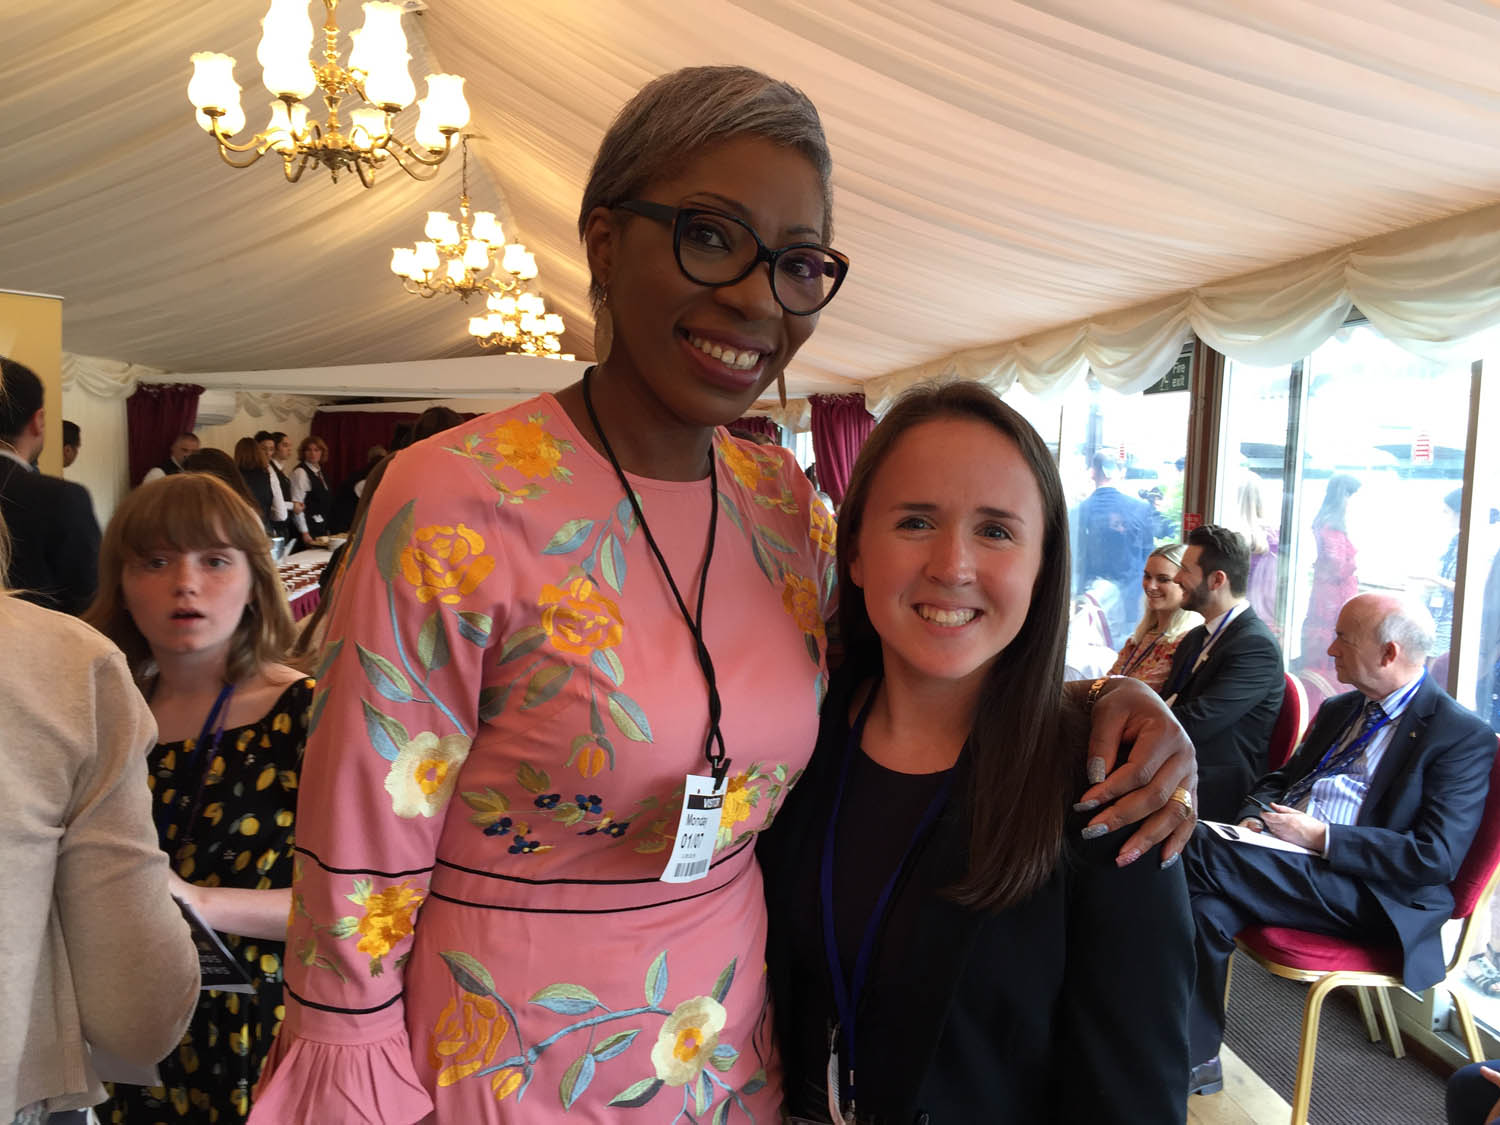 Libby was able to meet and chat with Tessy Ojo, CEO of The Diana Award.